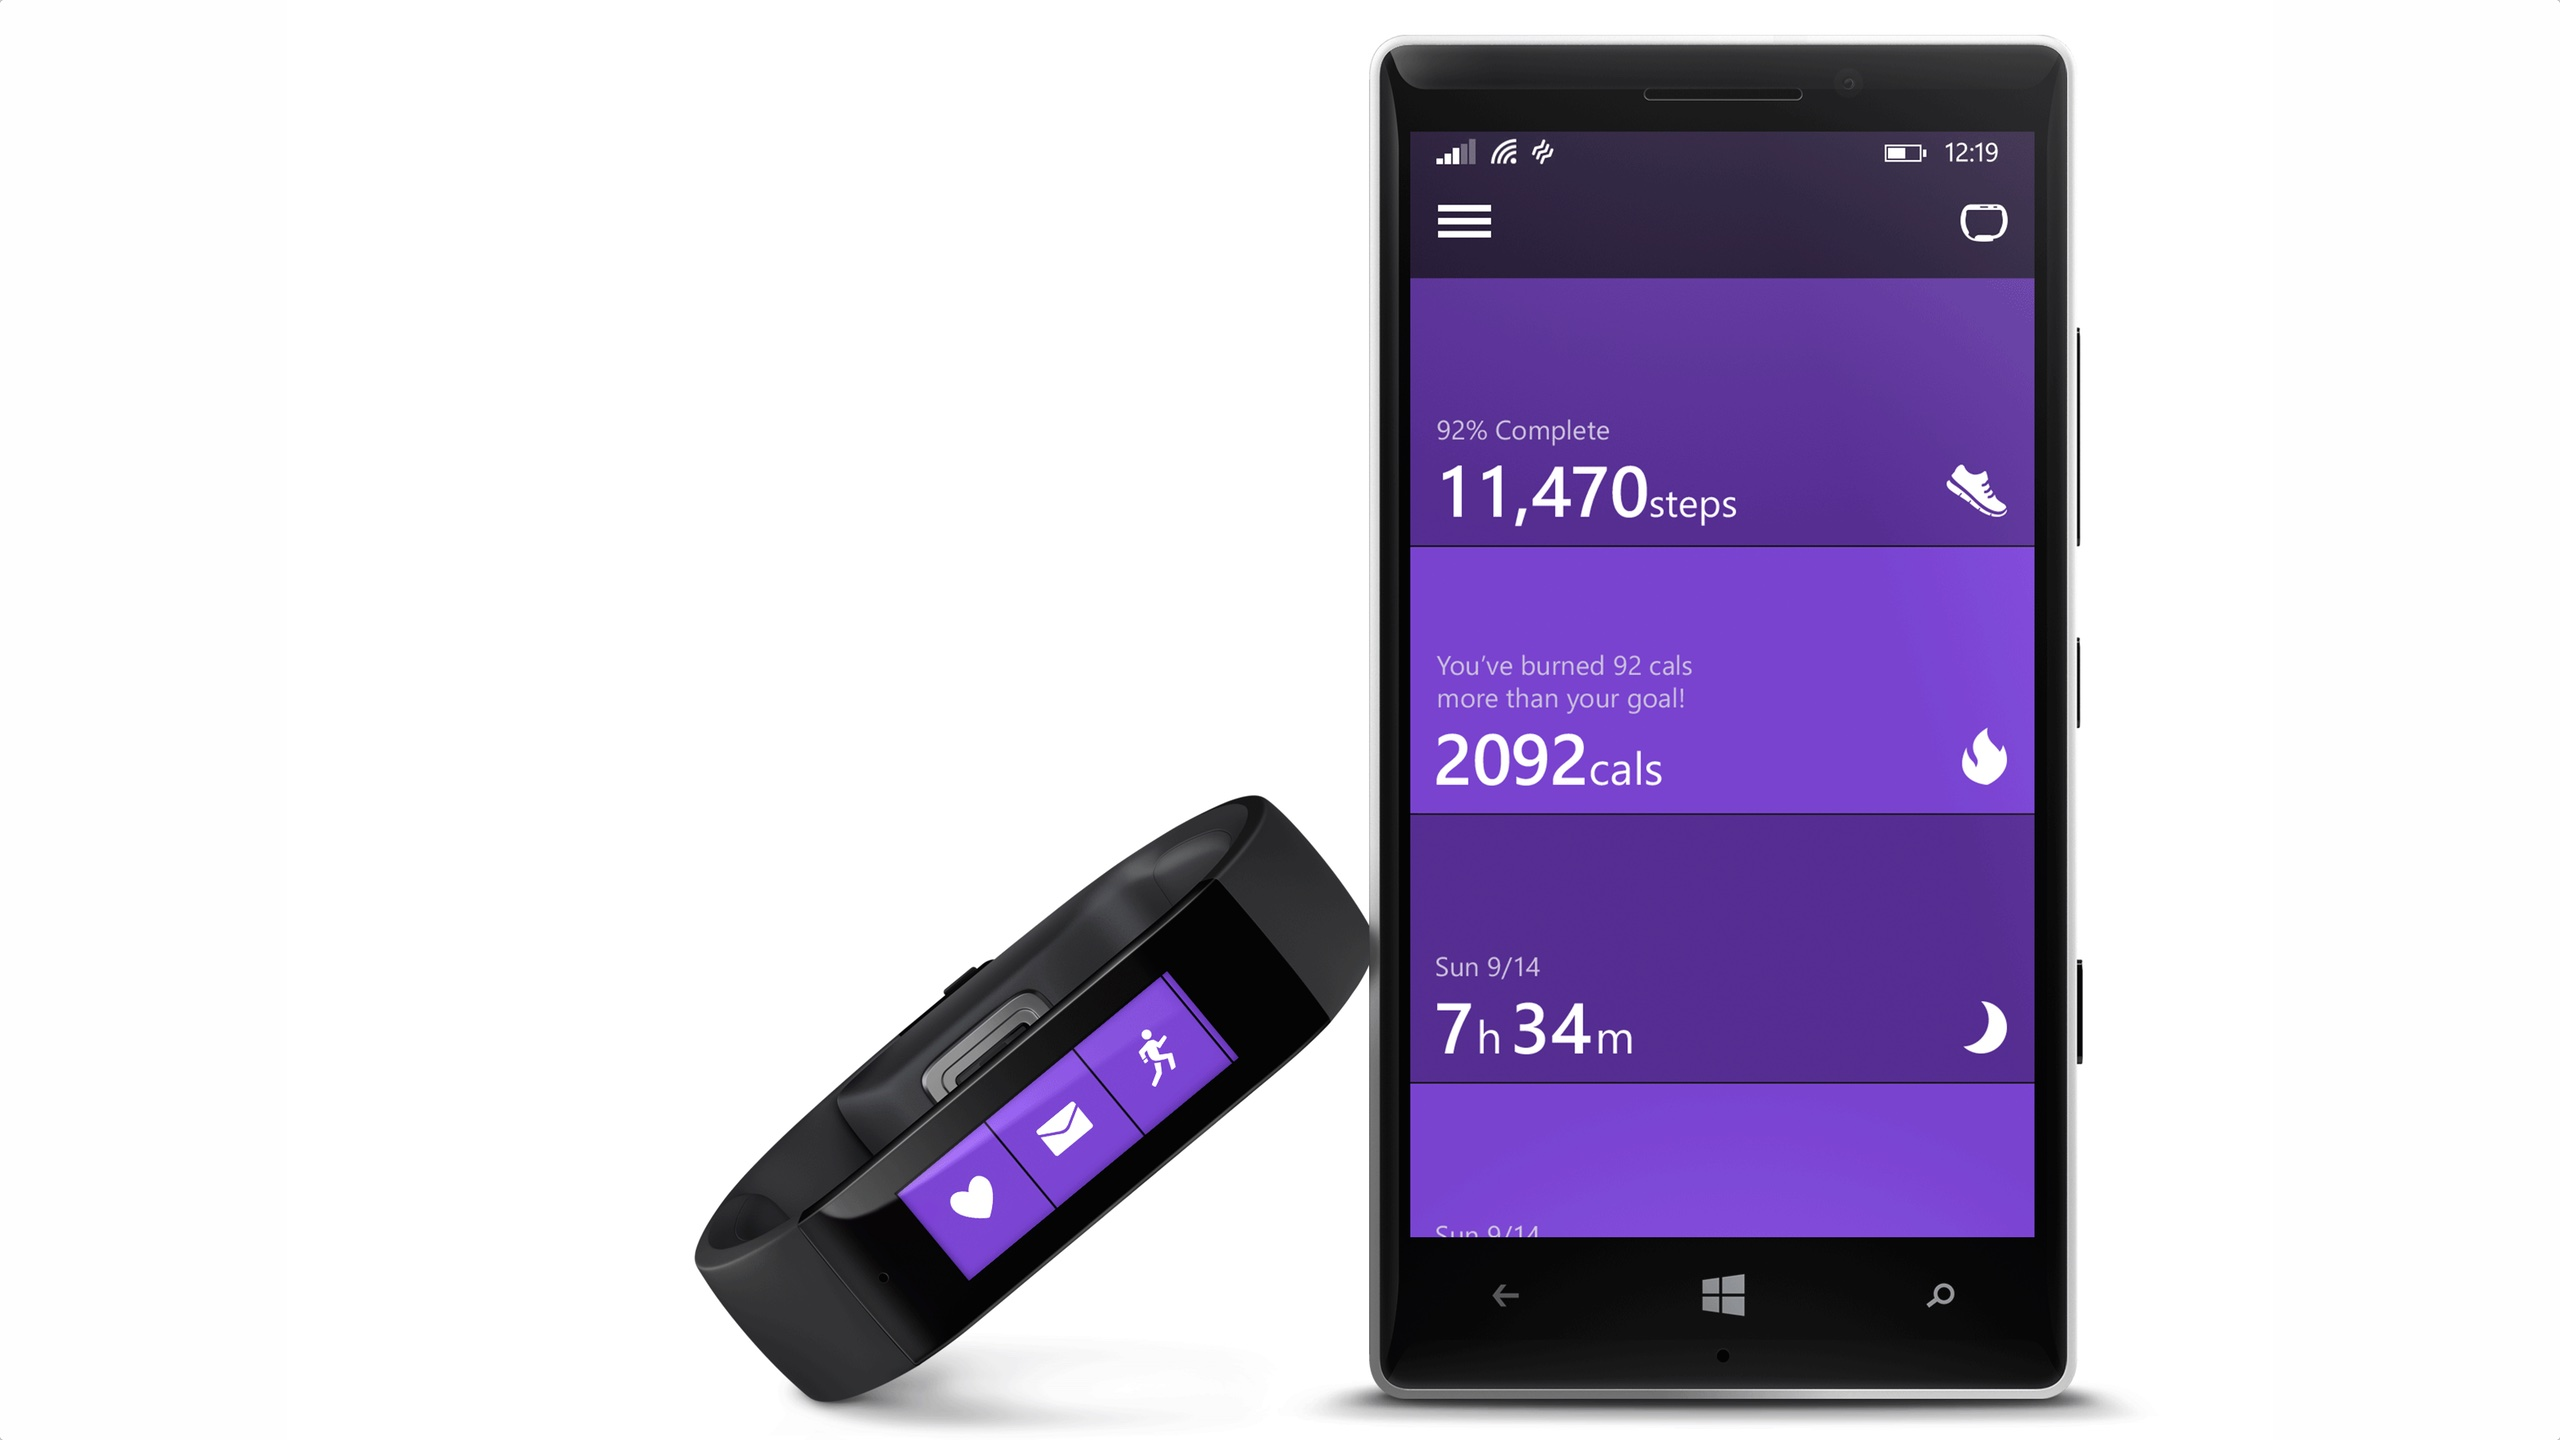 microsoft-health-band-fitness-tracker